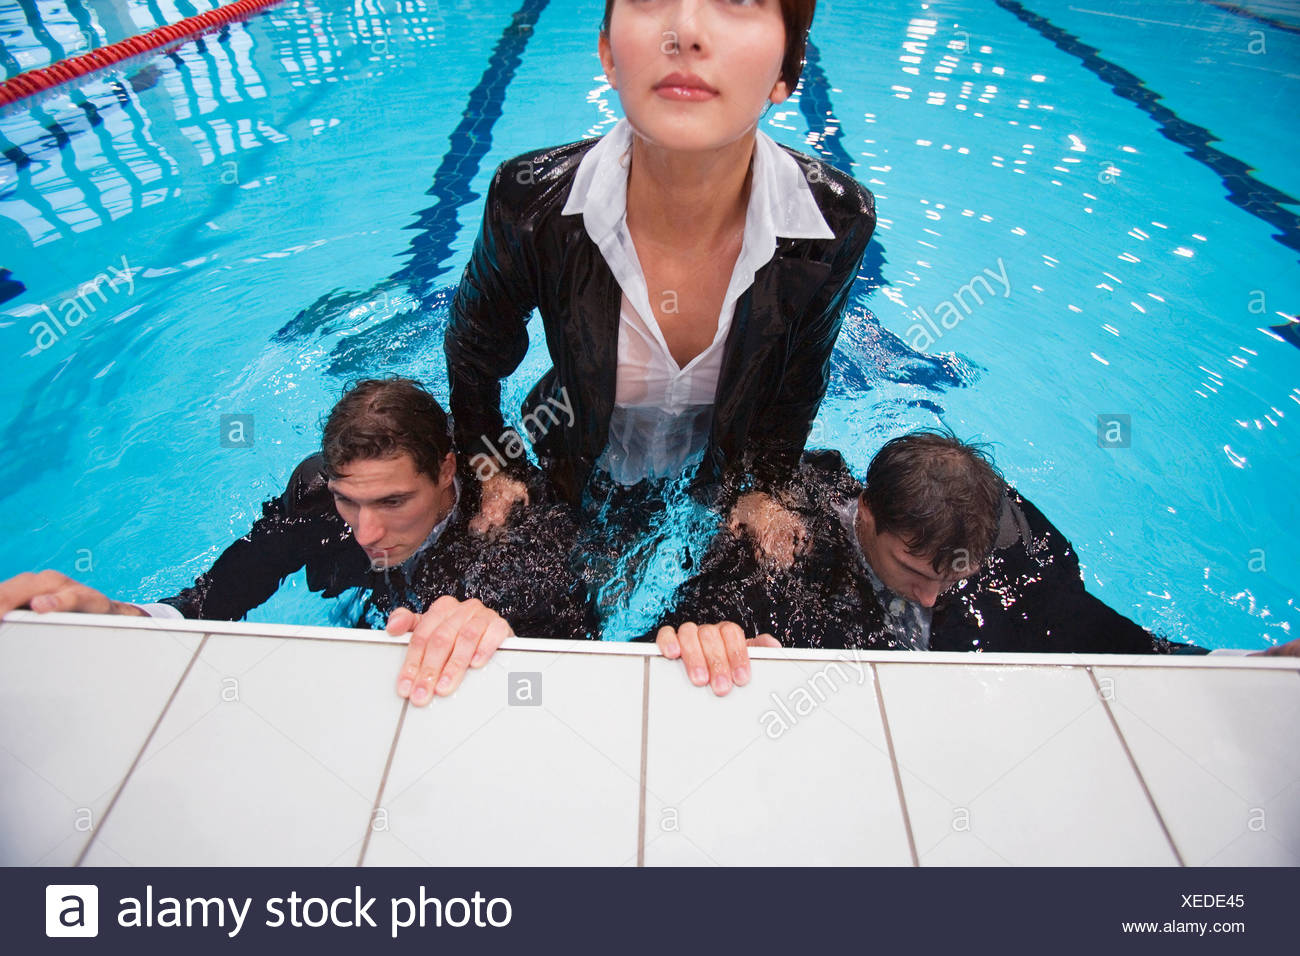 Woman leaning on men in water - Stock Image